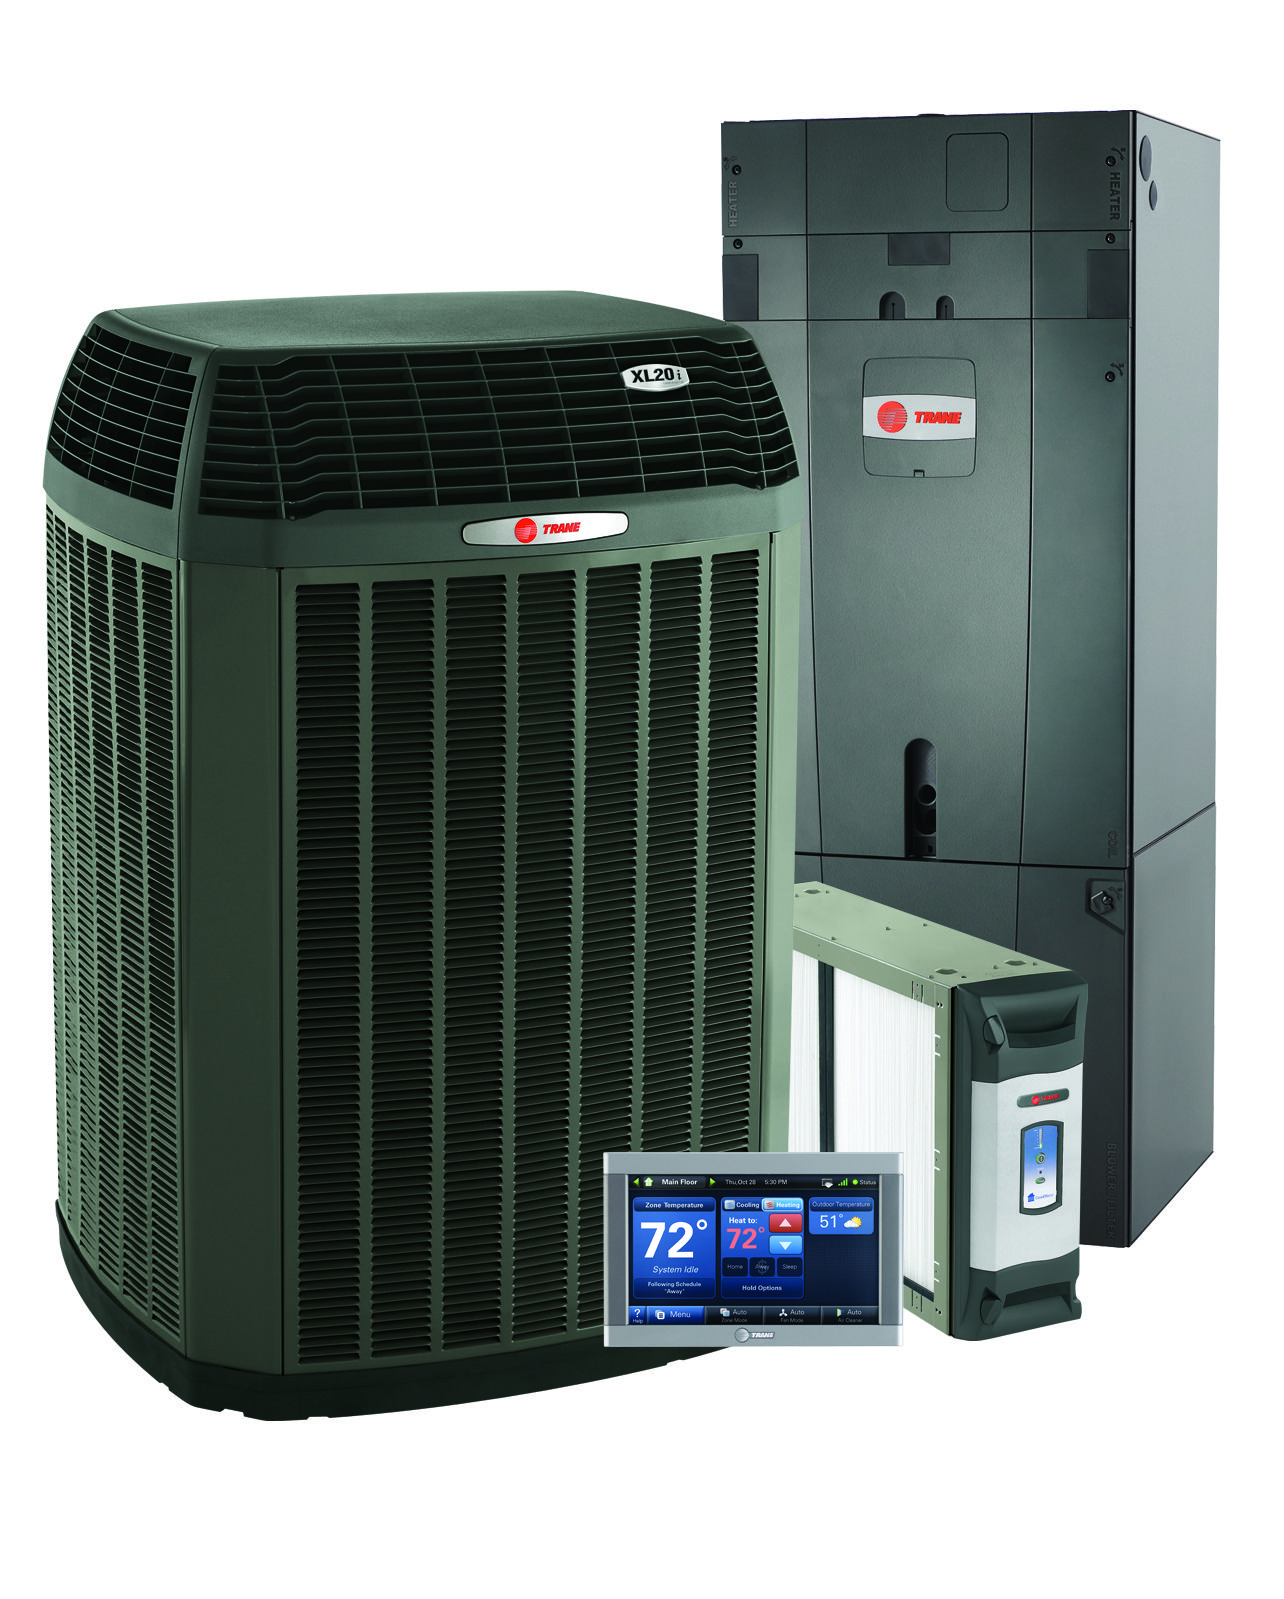 Trane System OCM offers V1_J Furnace installation